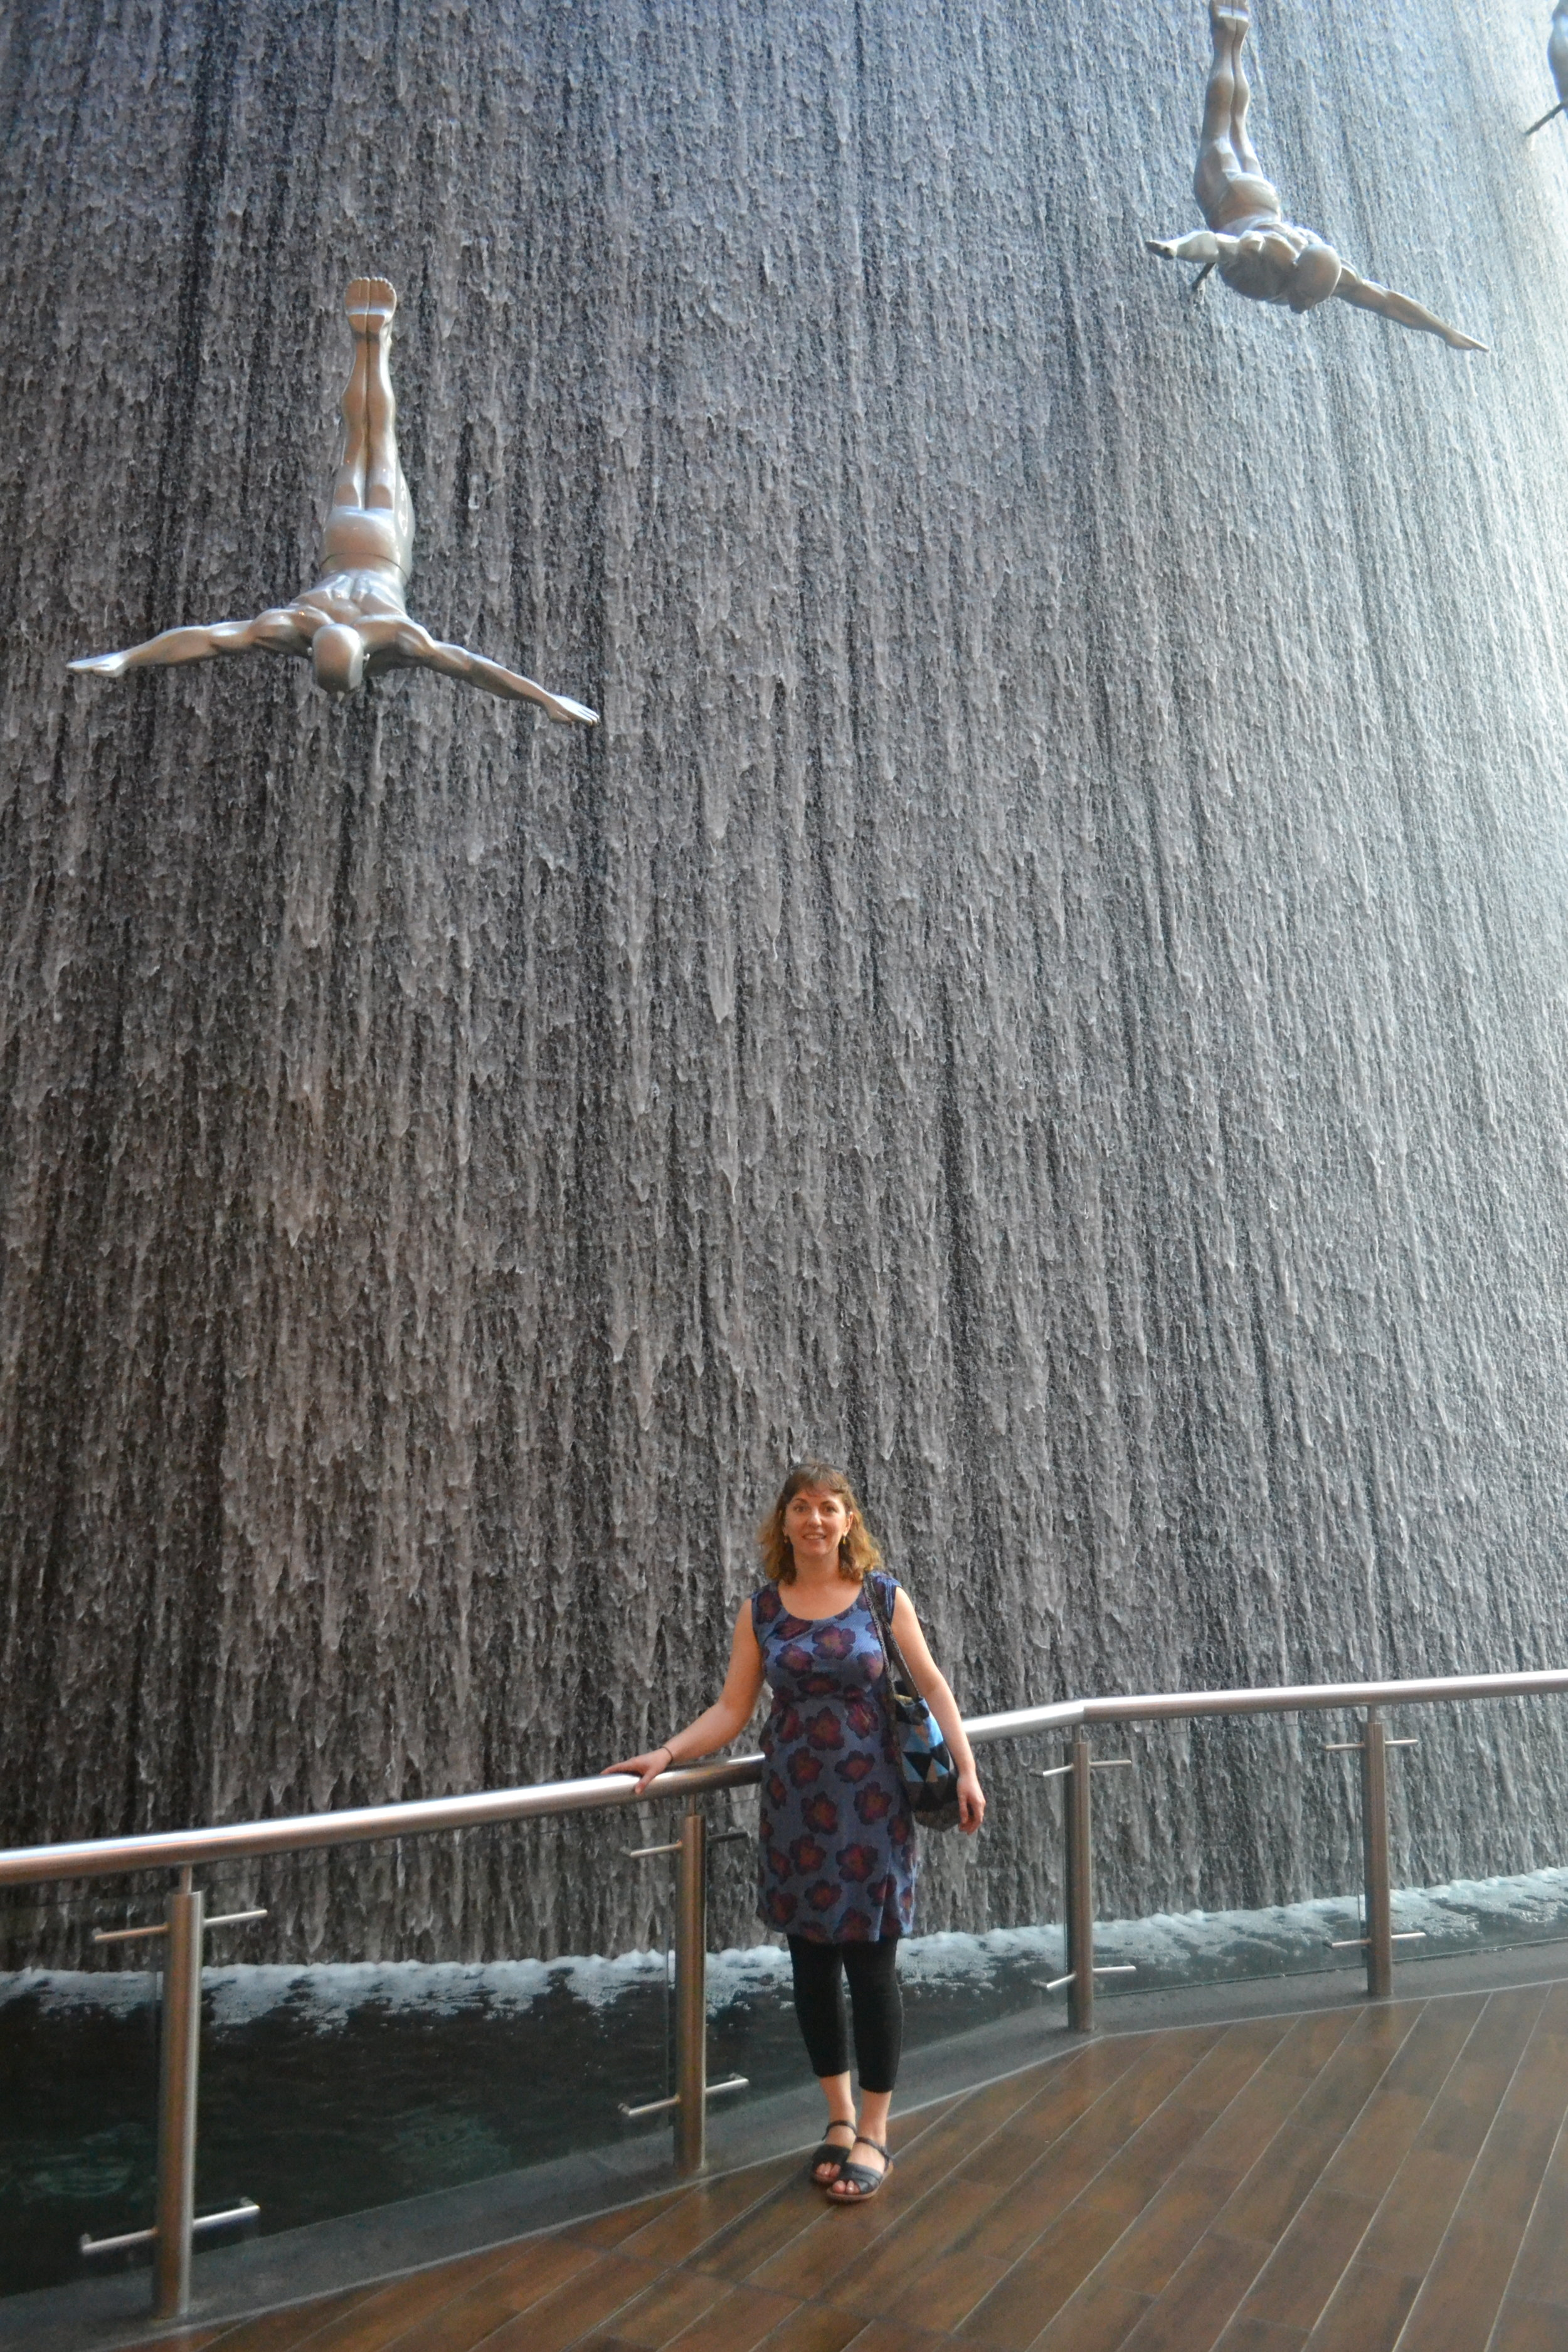 A waterfall inside the Dubai Mall